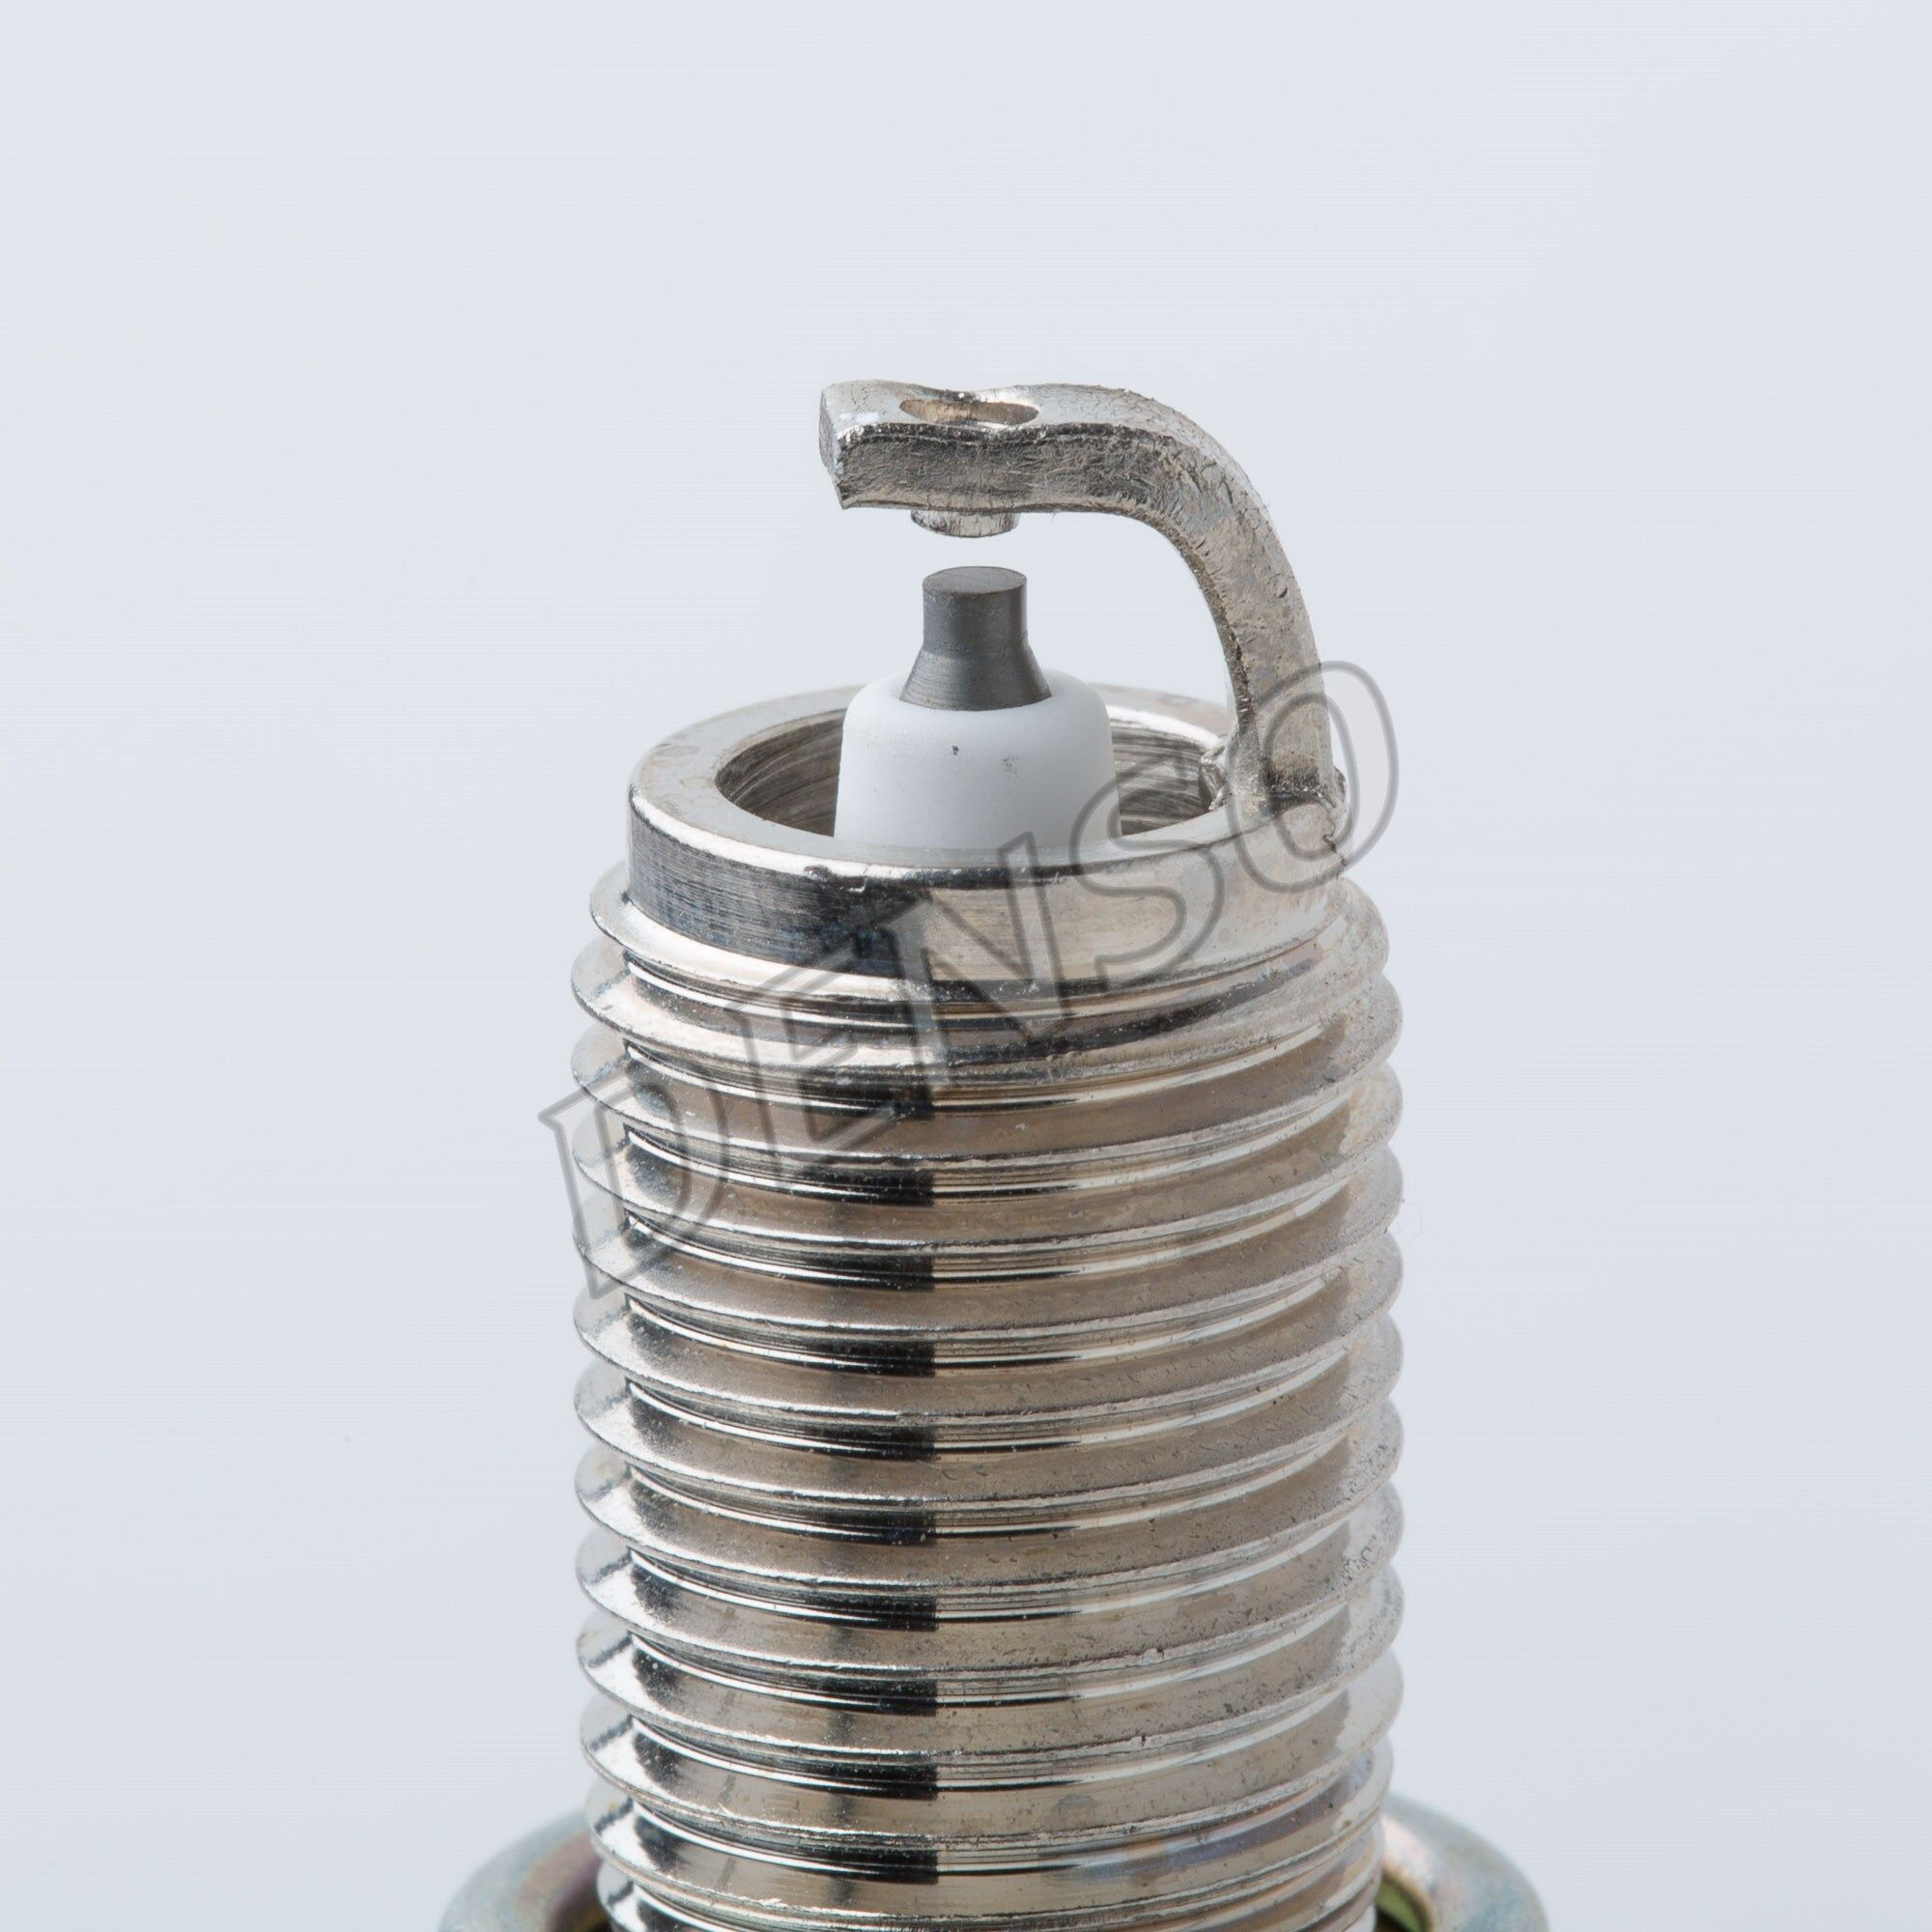 XU22TT Spark Plug DENSO - Experience and discount prices